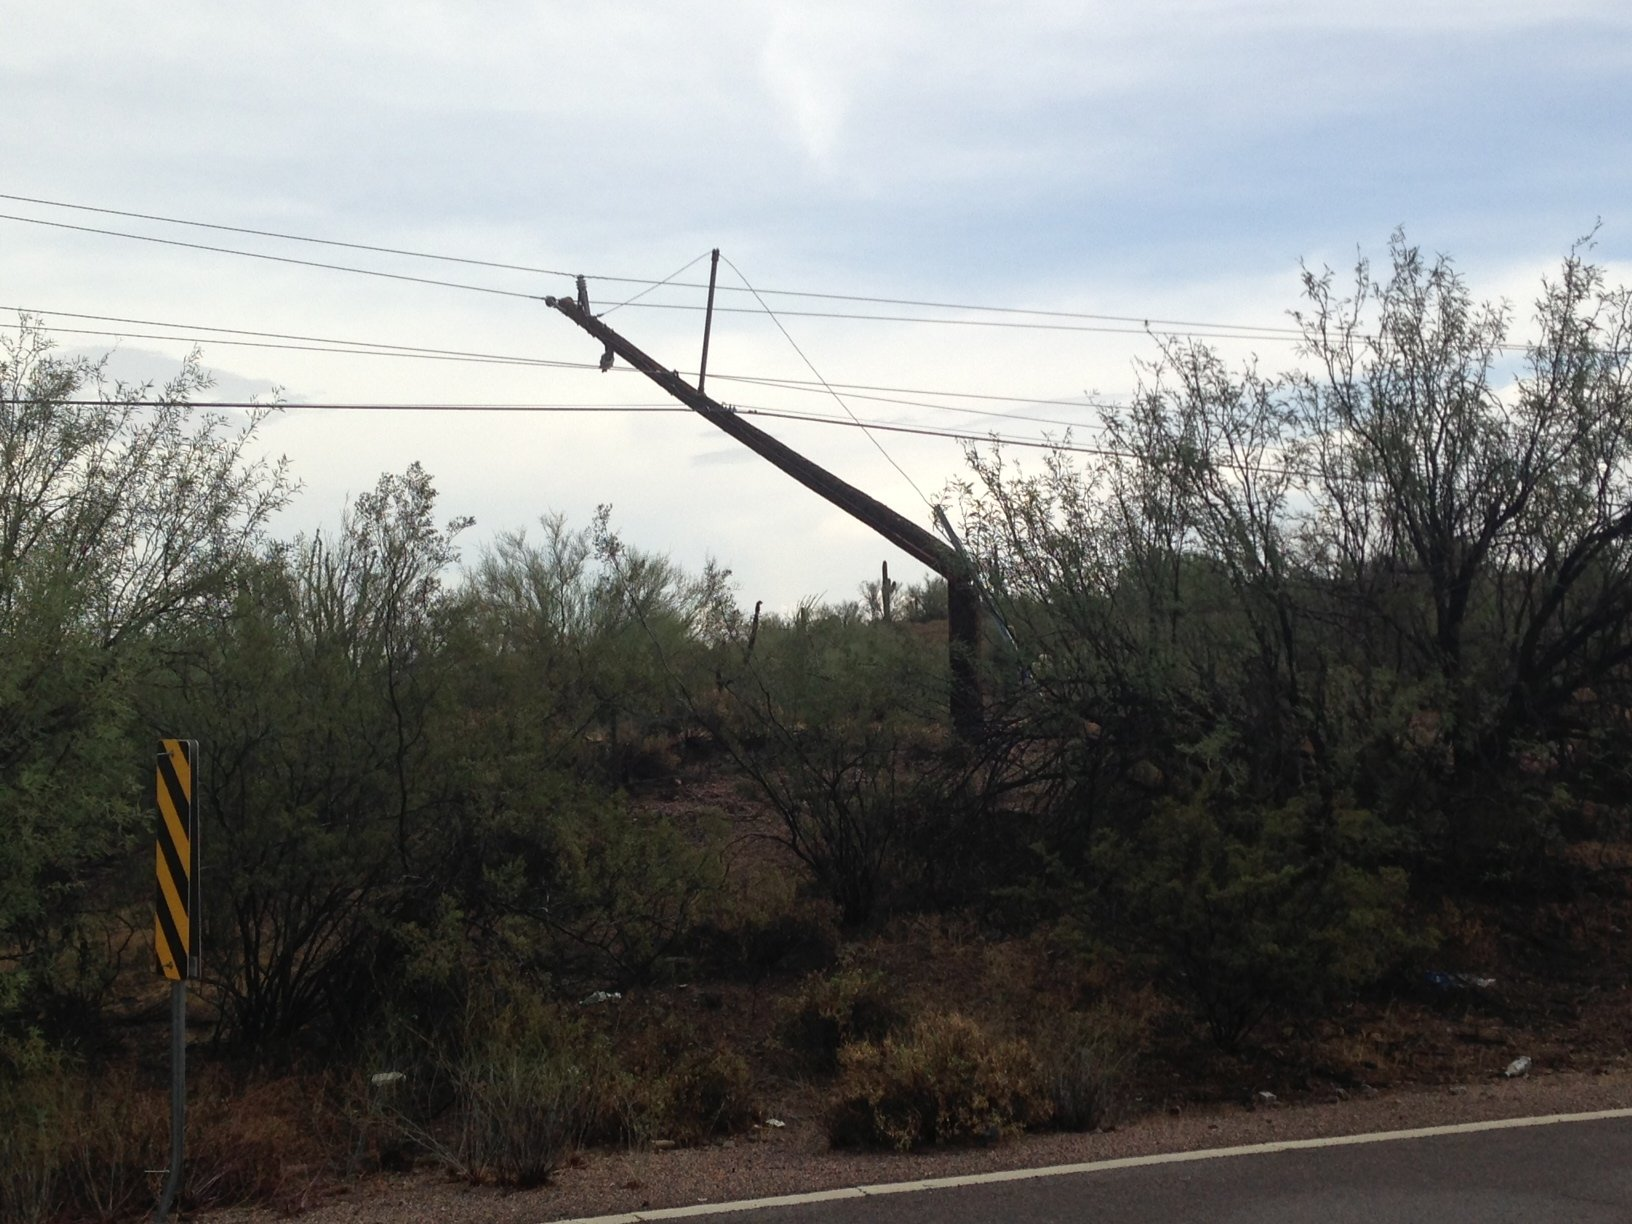 The storm knocked down power lines in Apache Junction on Friday afternoon. (Source: CBS 5 News)